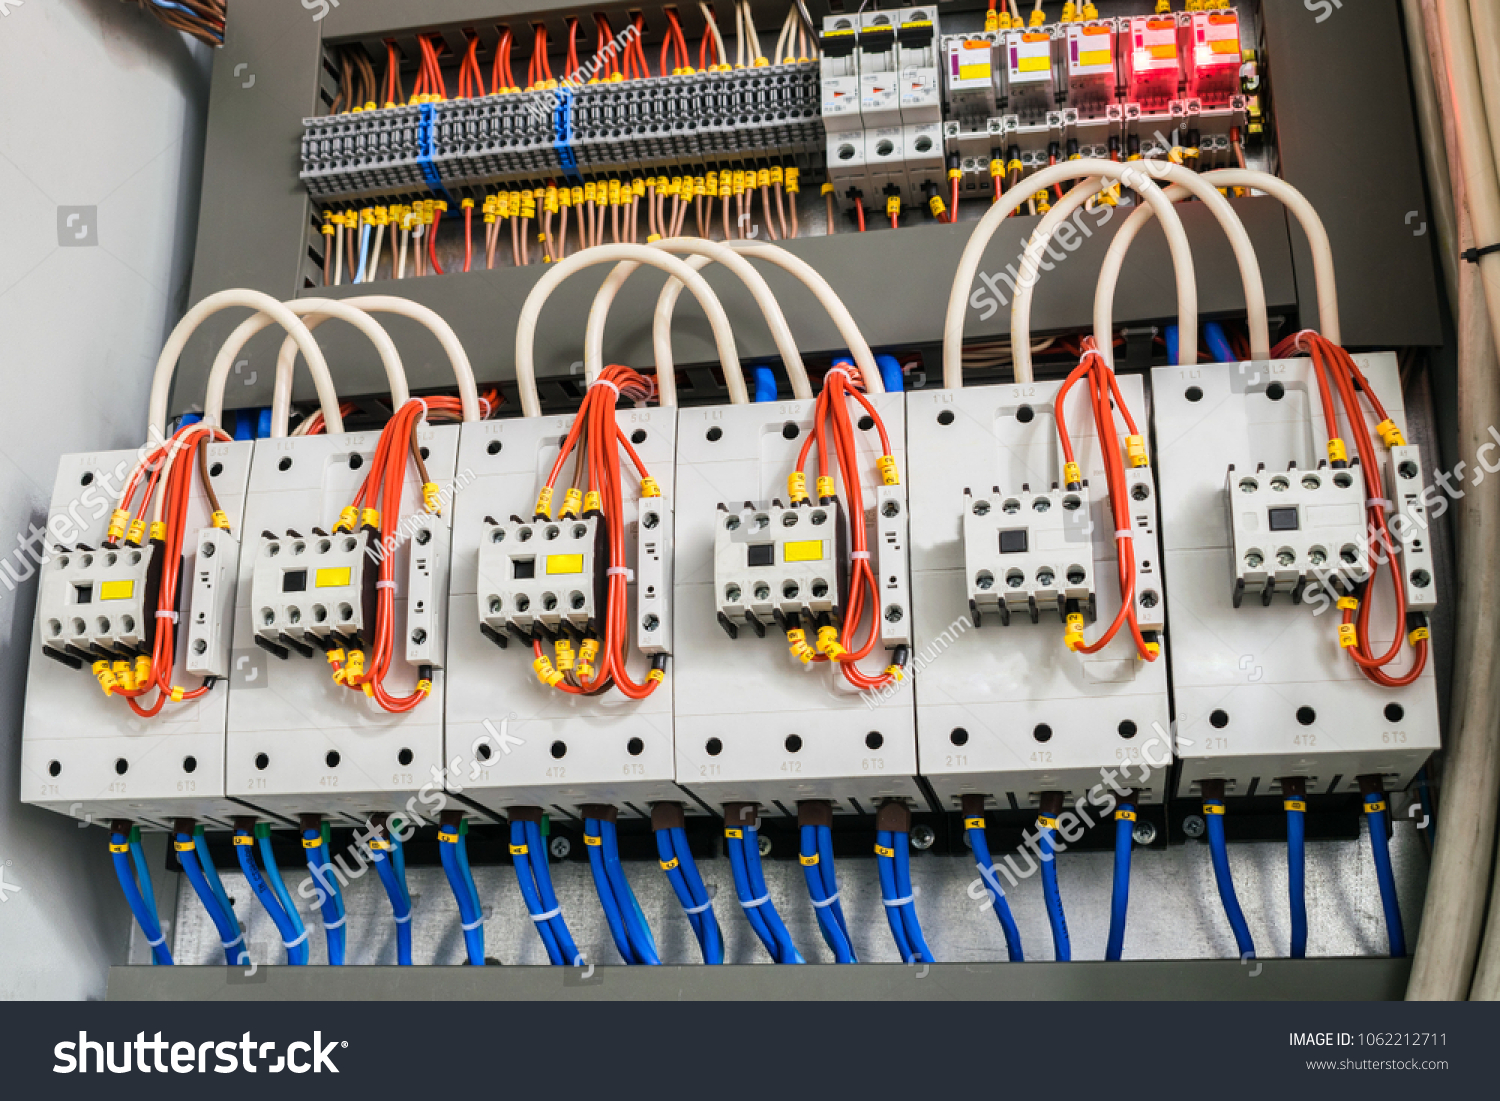 A modern open fuse box contains a lot of automata, connectors, relays, and